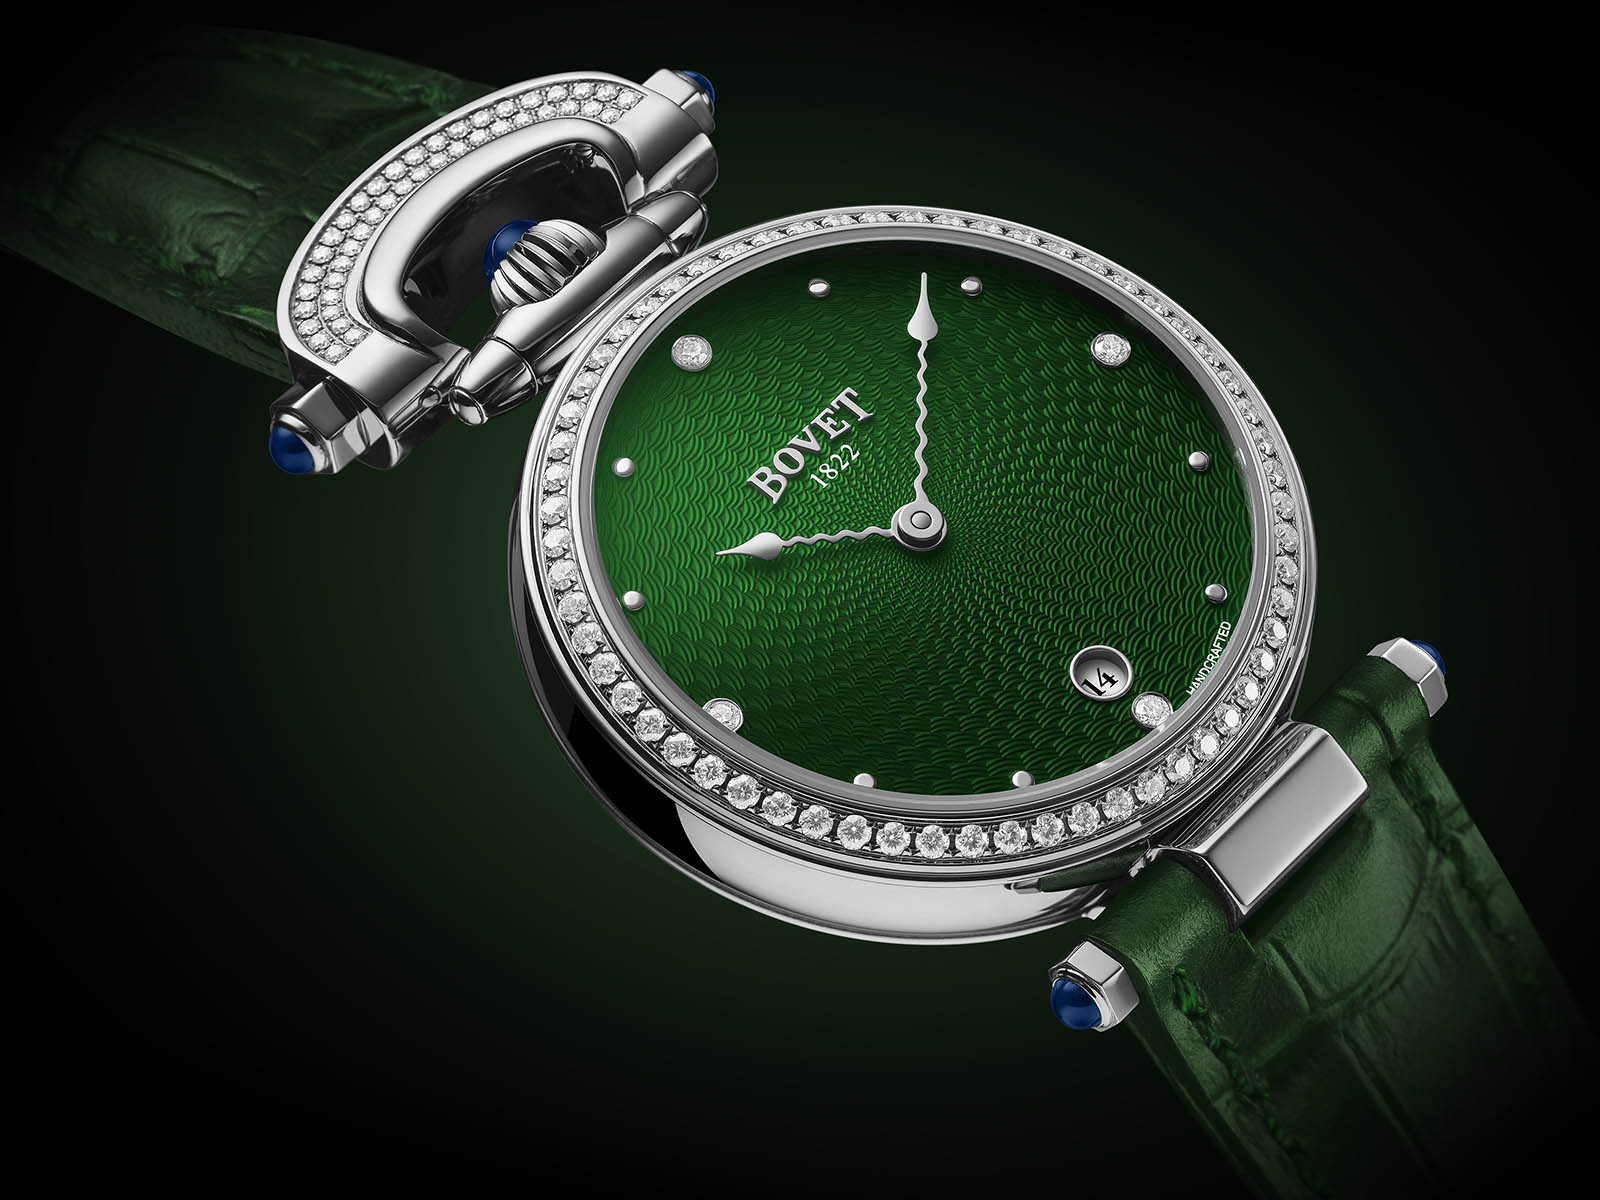 as36011-sd12-bovet-amadeo-fleurier-36-miss-audrey-2.jpg